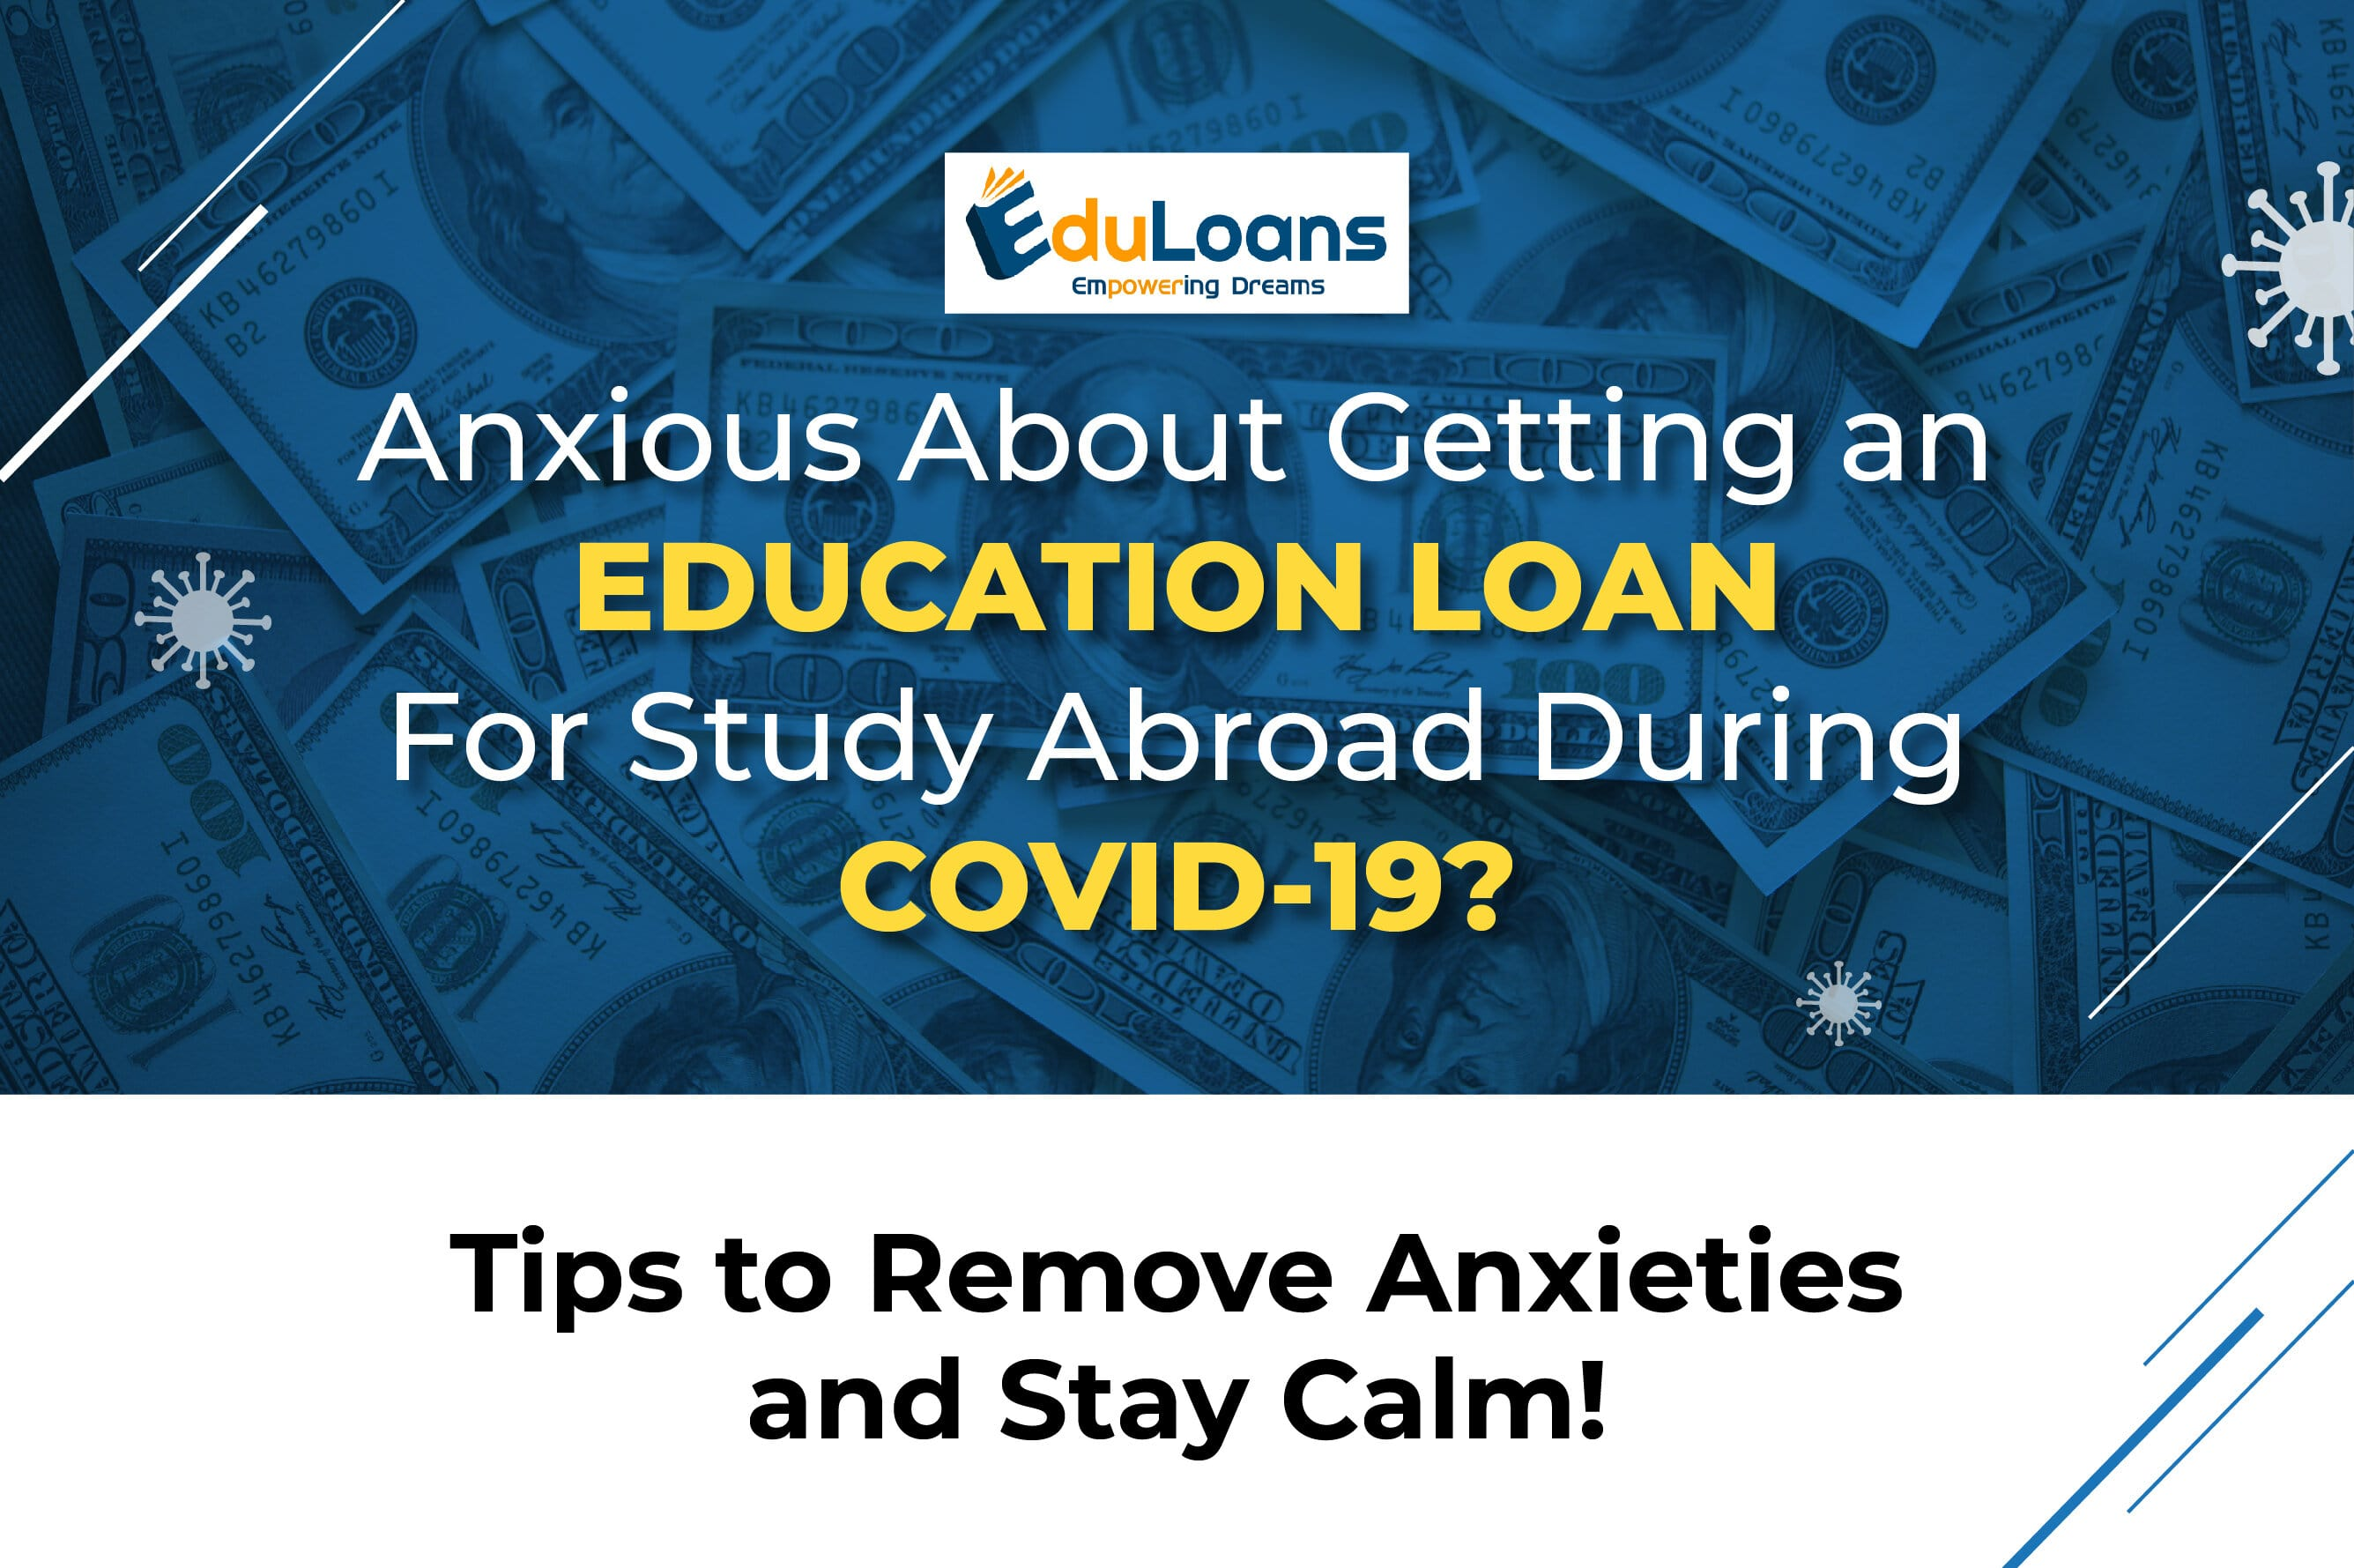 Anxious About Getting an Education Loan for Study Abroad During Covid-19? Tips to Remove Anxieties and Stay Calm